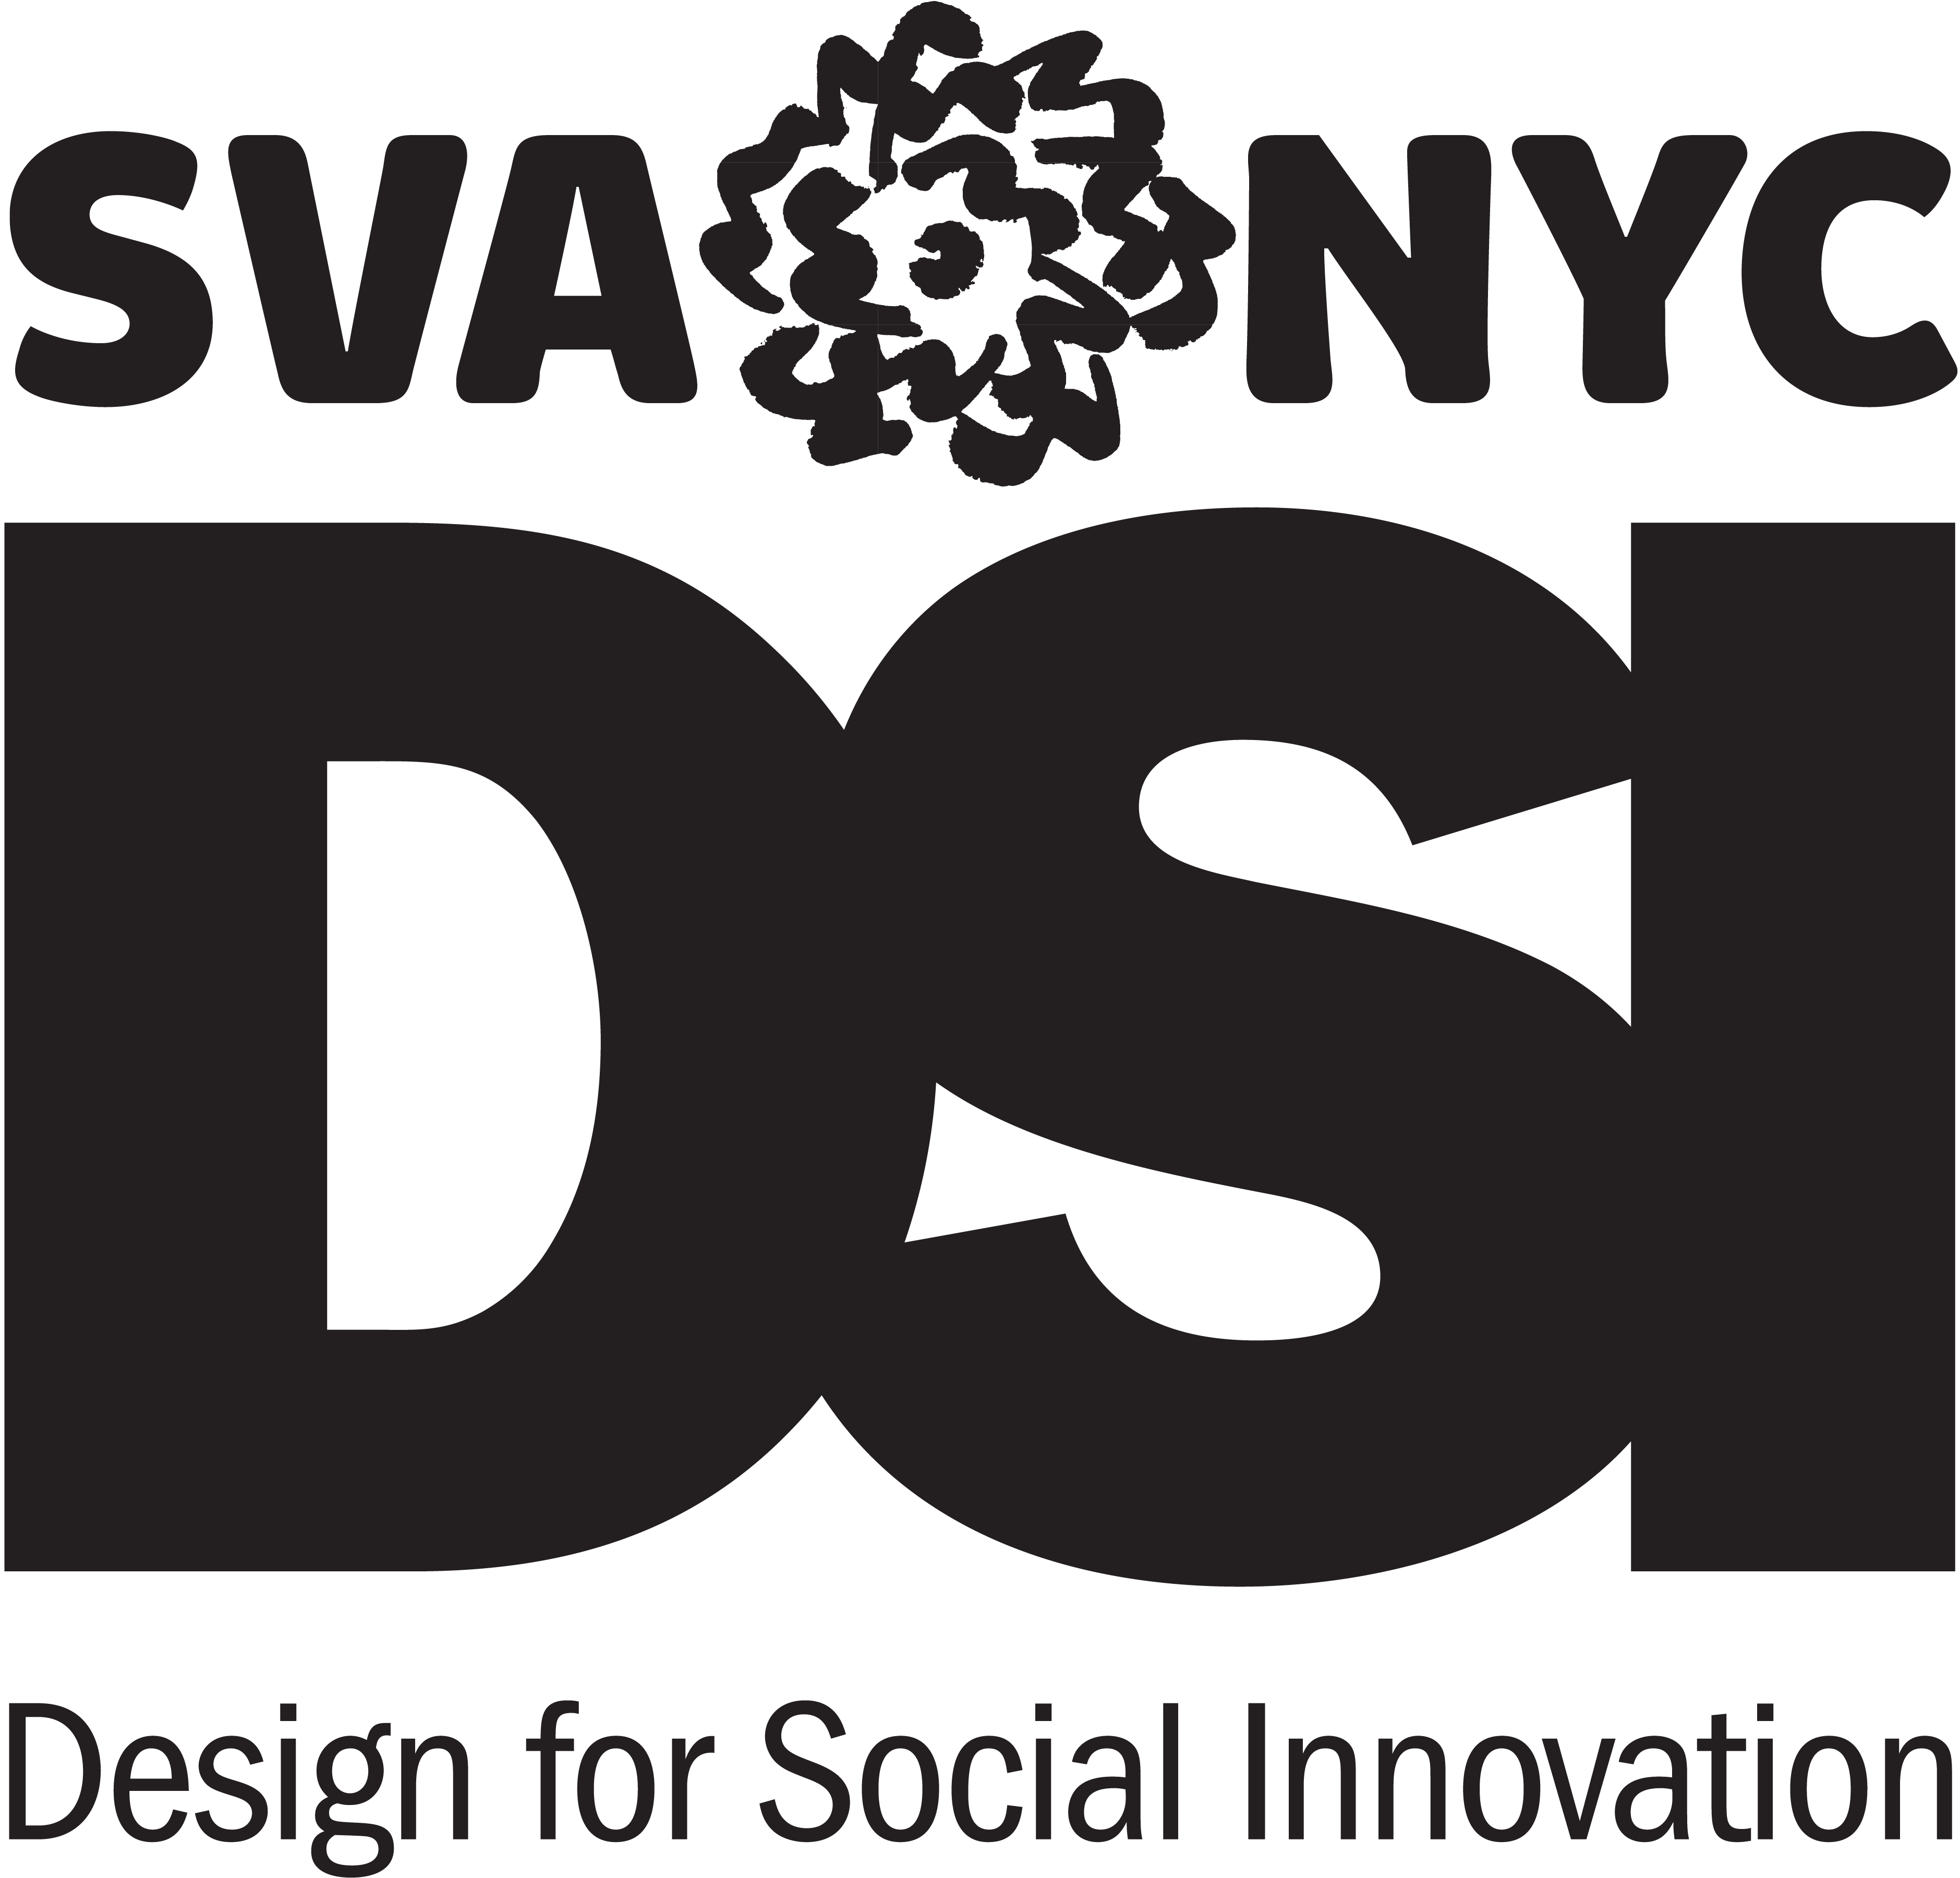 MFA Design for Social Innovation logo